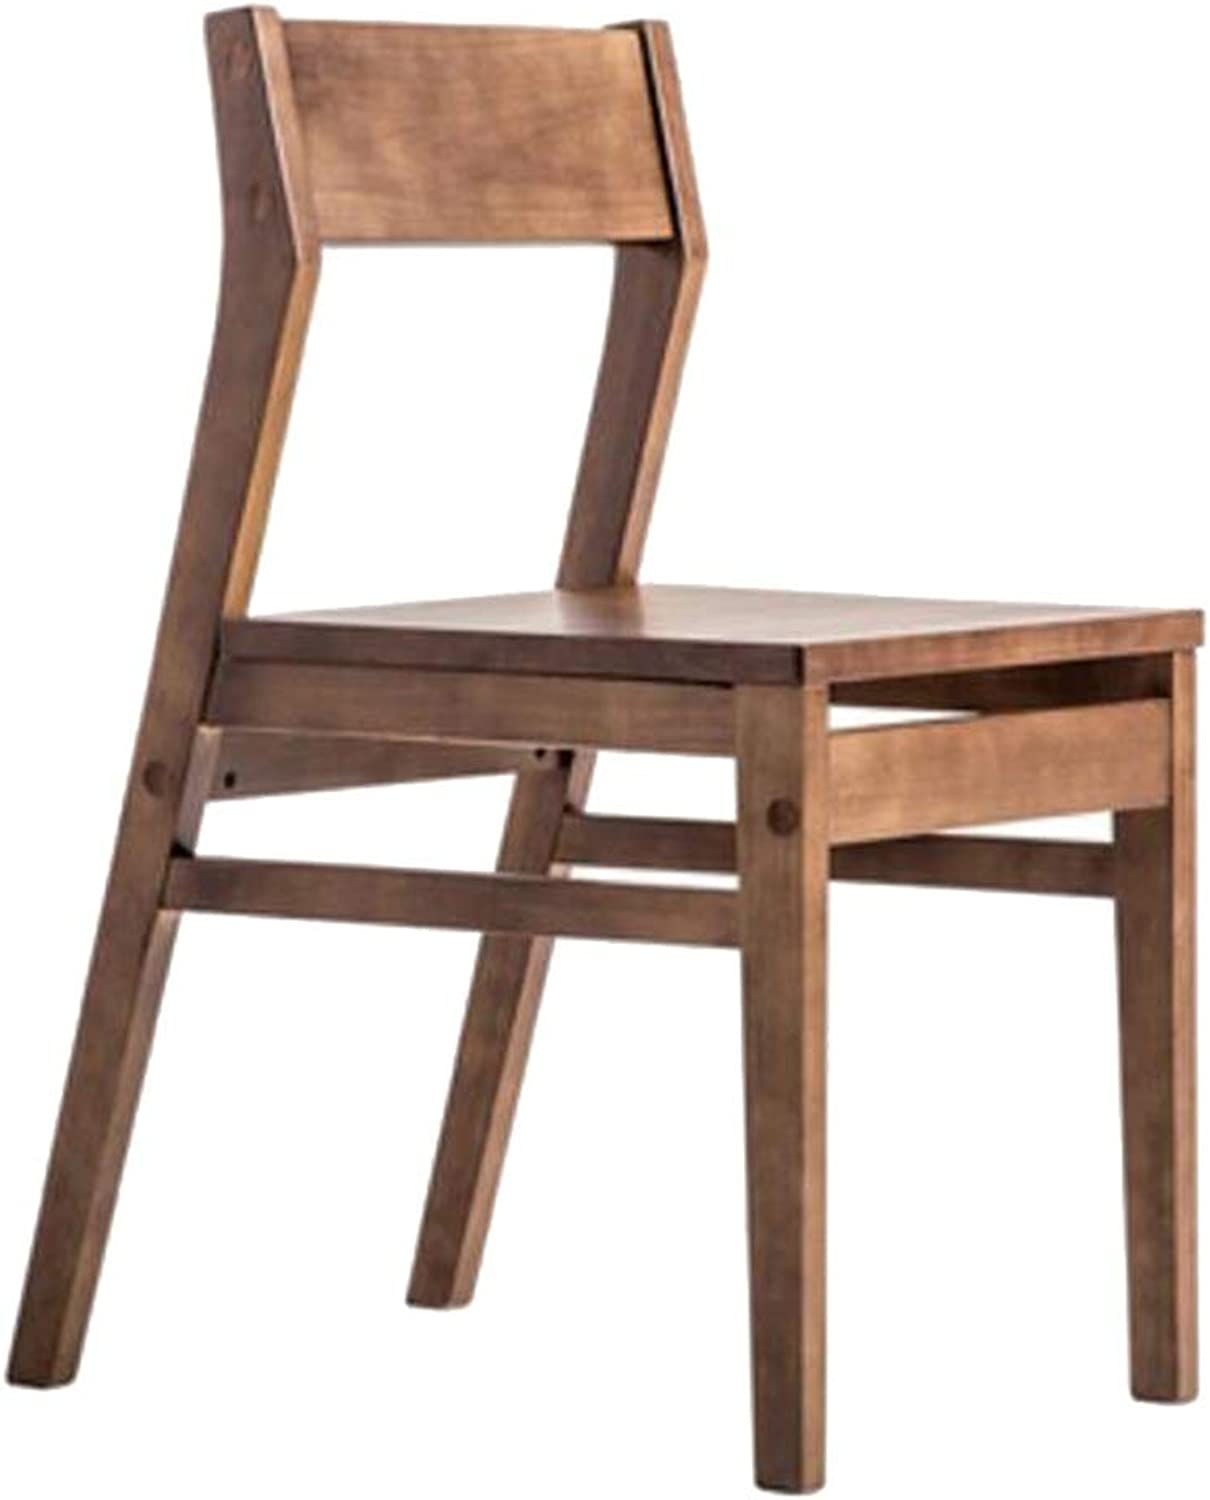 Dining Chairs Dining Table Chair Kitchen Chairs-Nordic Solid Wood Modern Minimalist Home All Desk Chair Simple Restaurant Table Chair HENGXIAO (color   Walnut color)